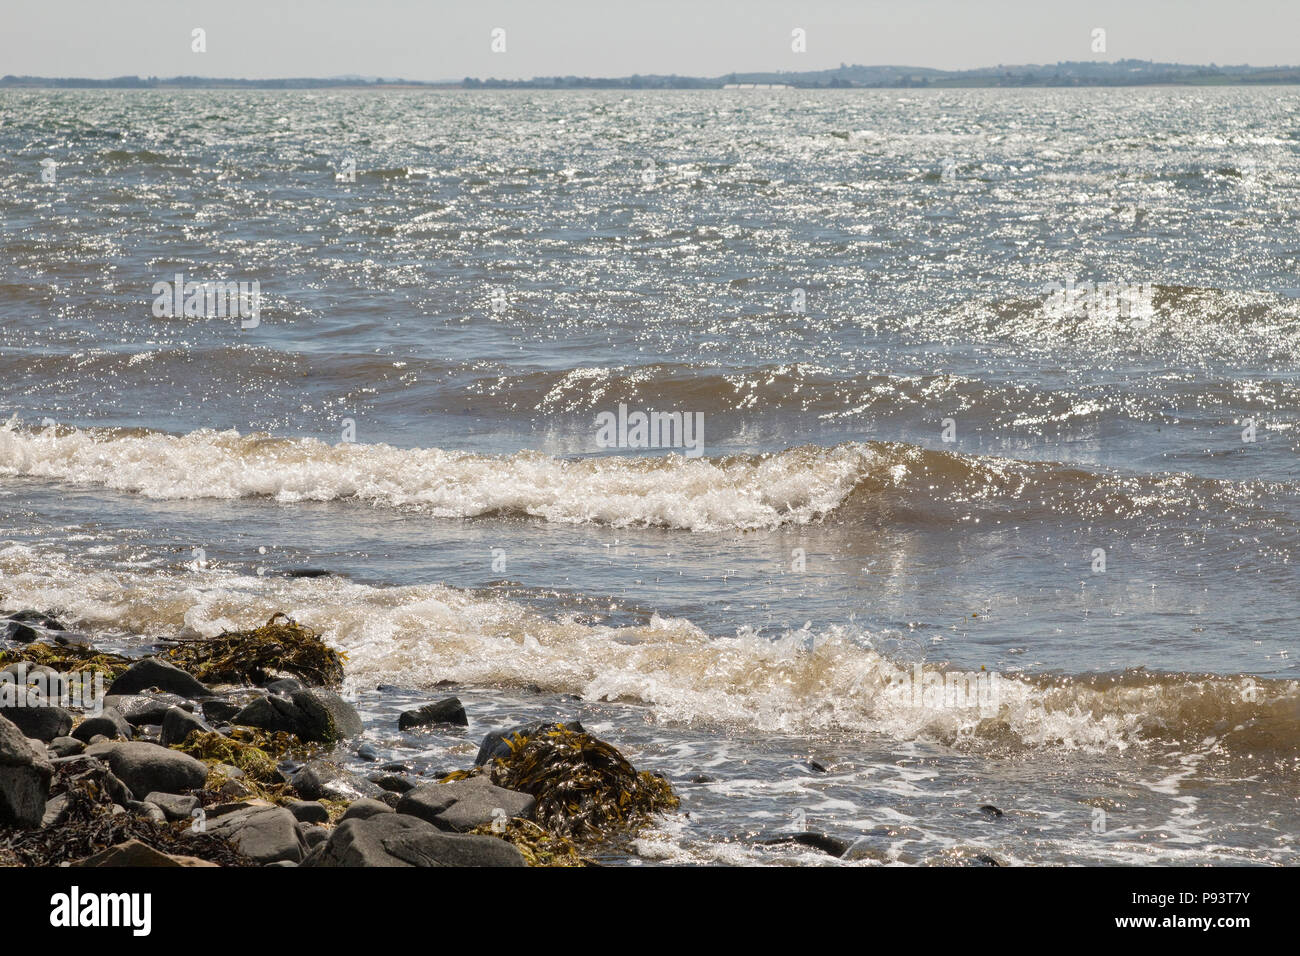 Shoreline at Strangford Lough, Co Down - Stock Image